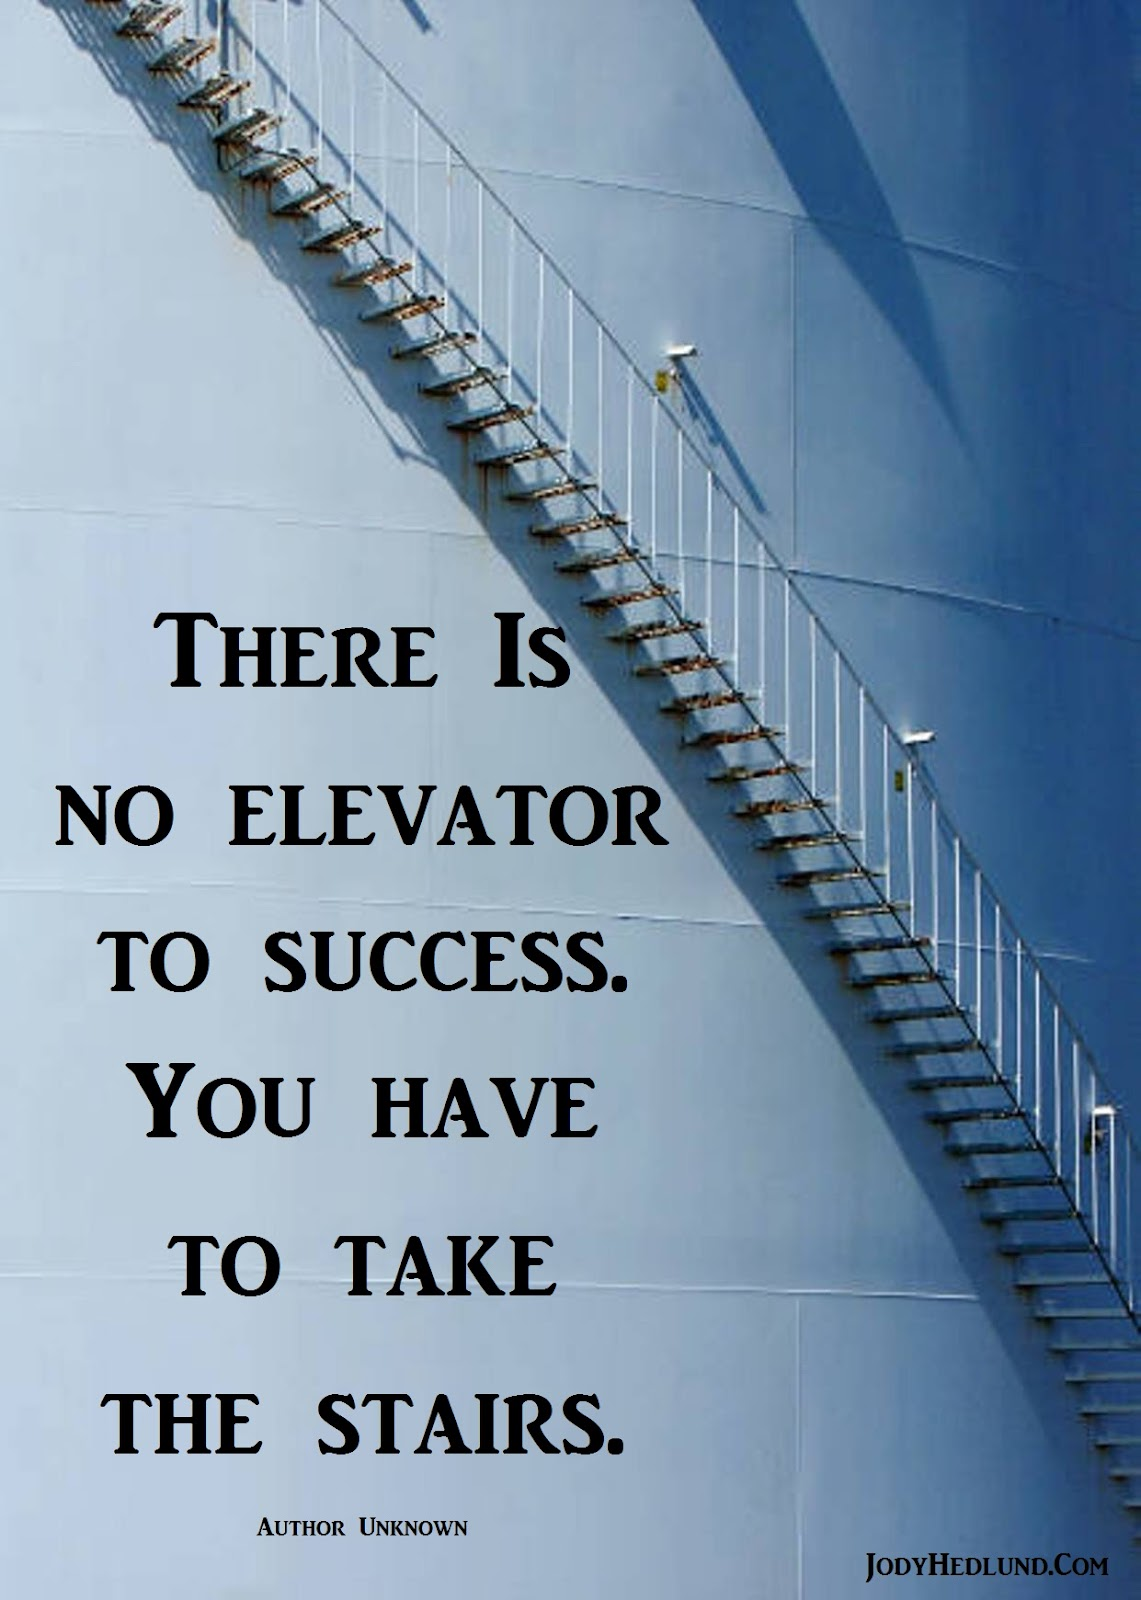 Afbeeldingsresultaat voor there's no elevator to success you have to take the stairs